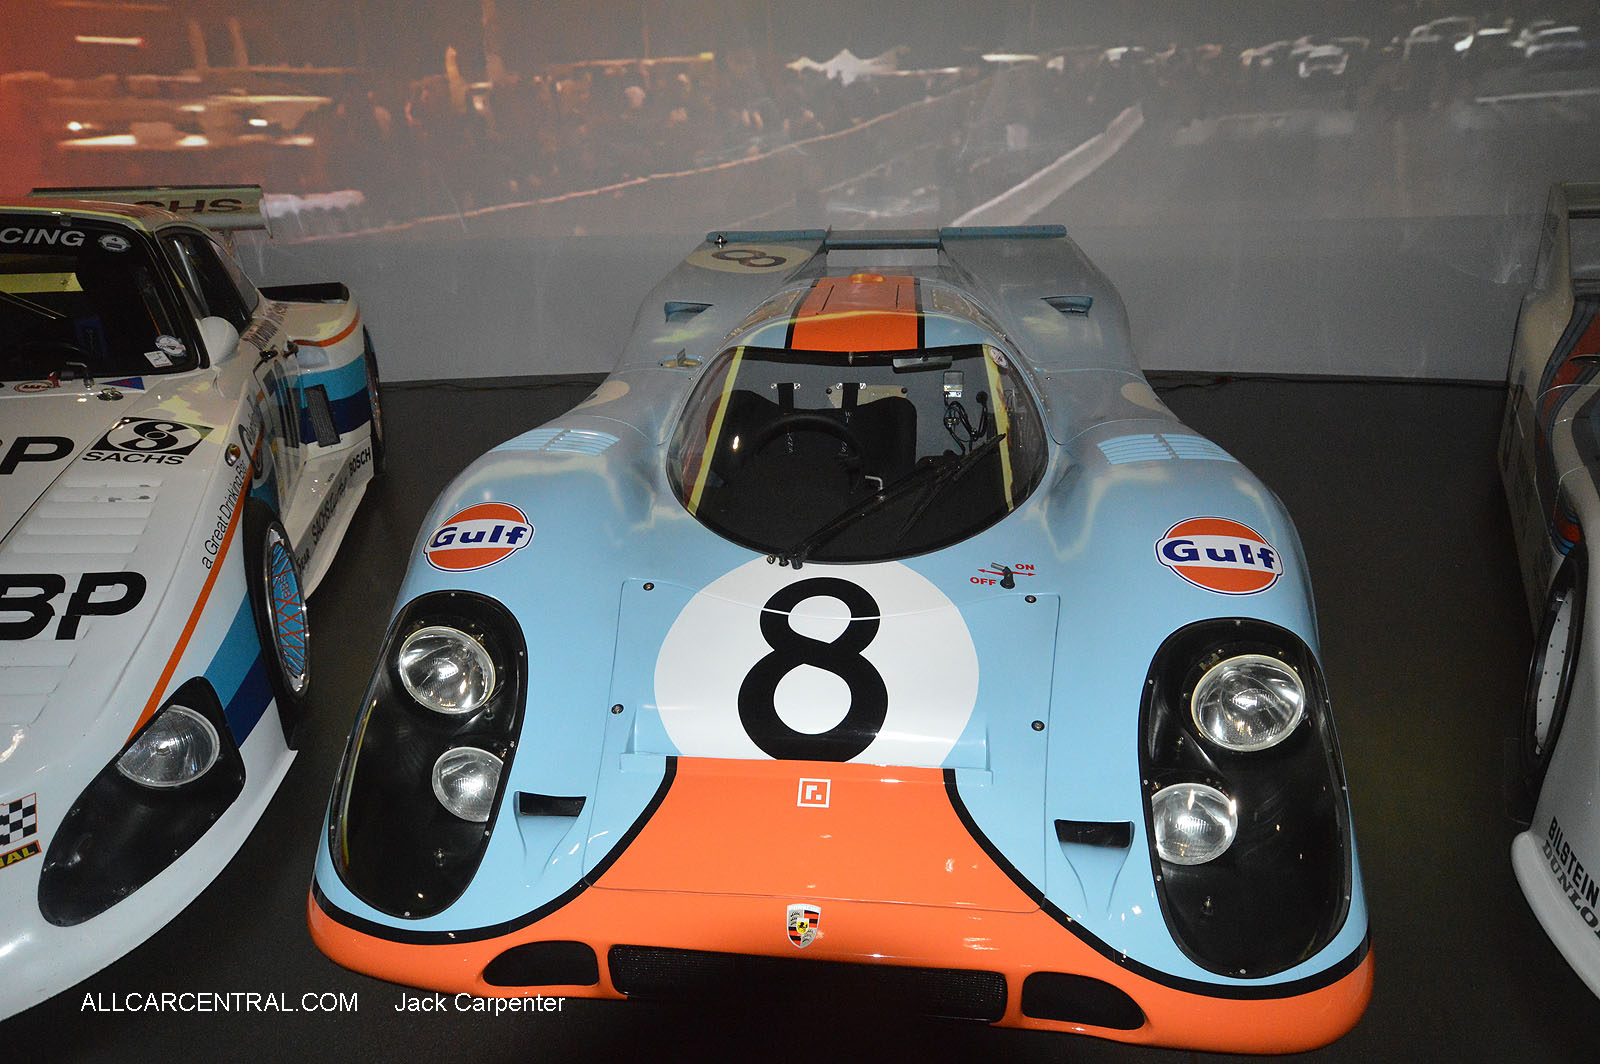 Porsche 917K 1969 Petersen Automotive Museum 2016 Jack  Carpenter Photo